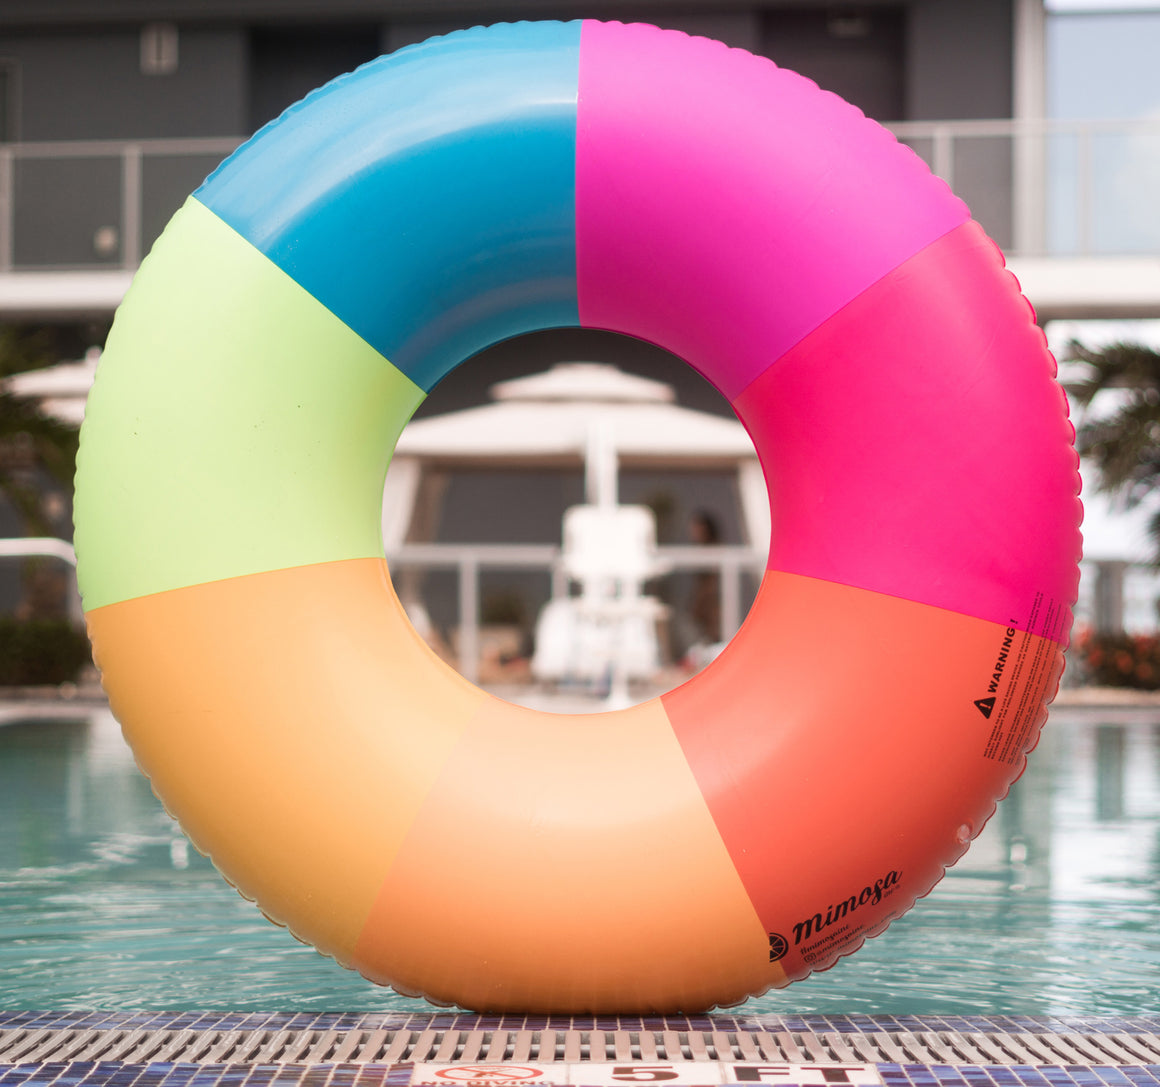 Rainbow pattern pool float by Mimosa Inc